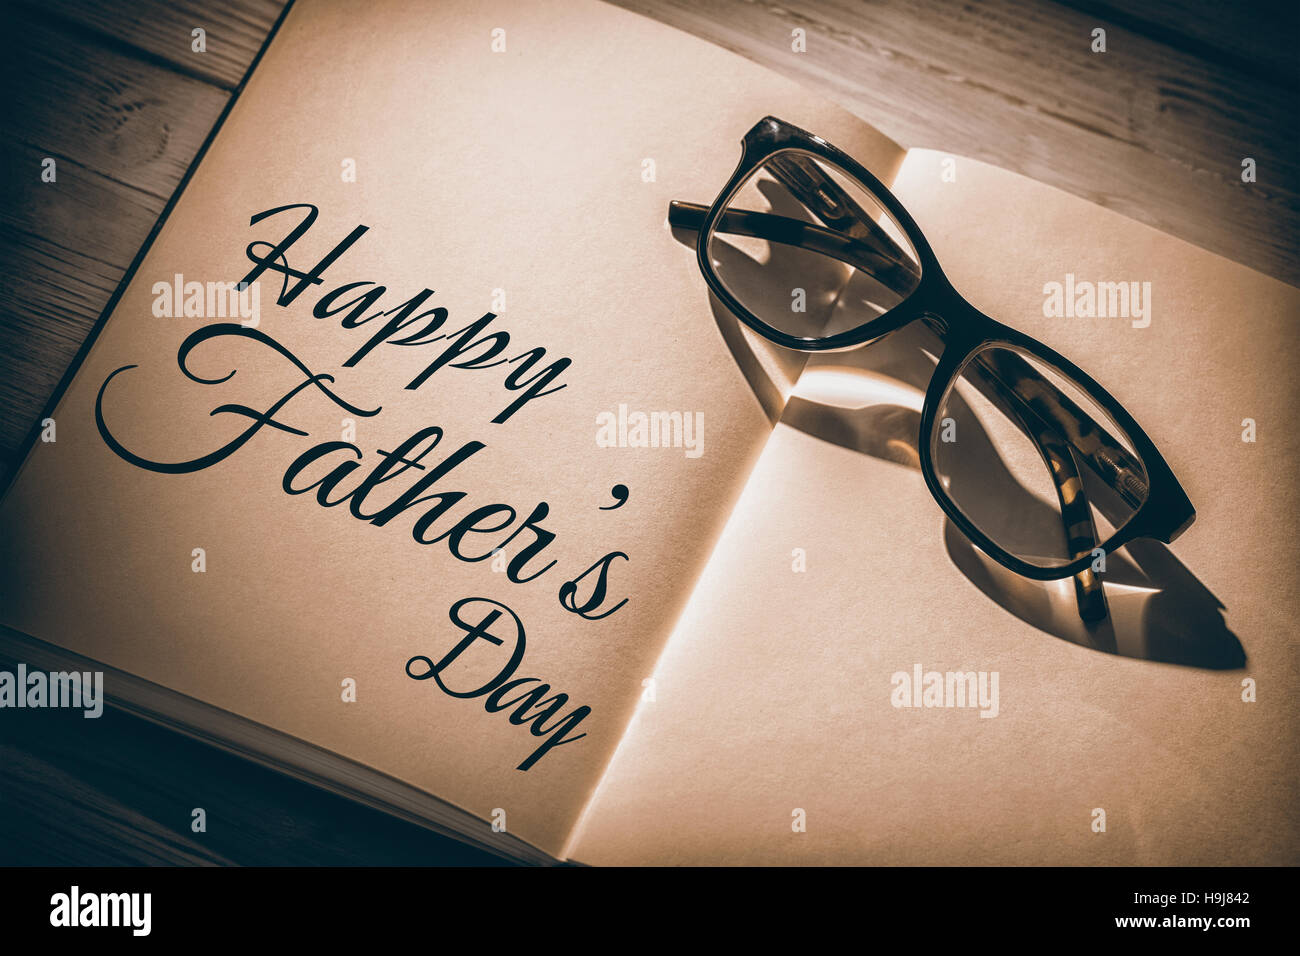 Happy fathers day written on notebook - Stock Image